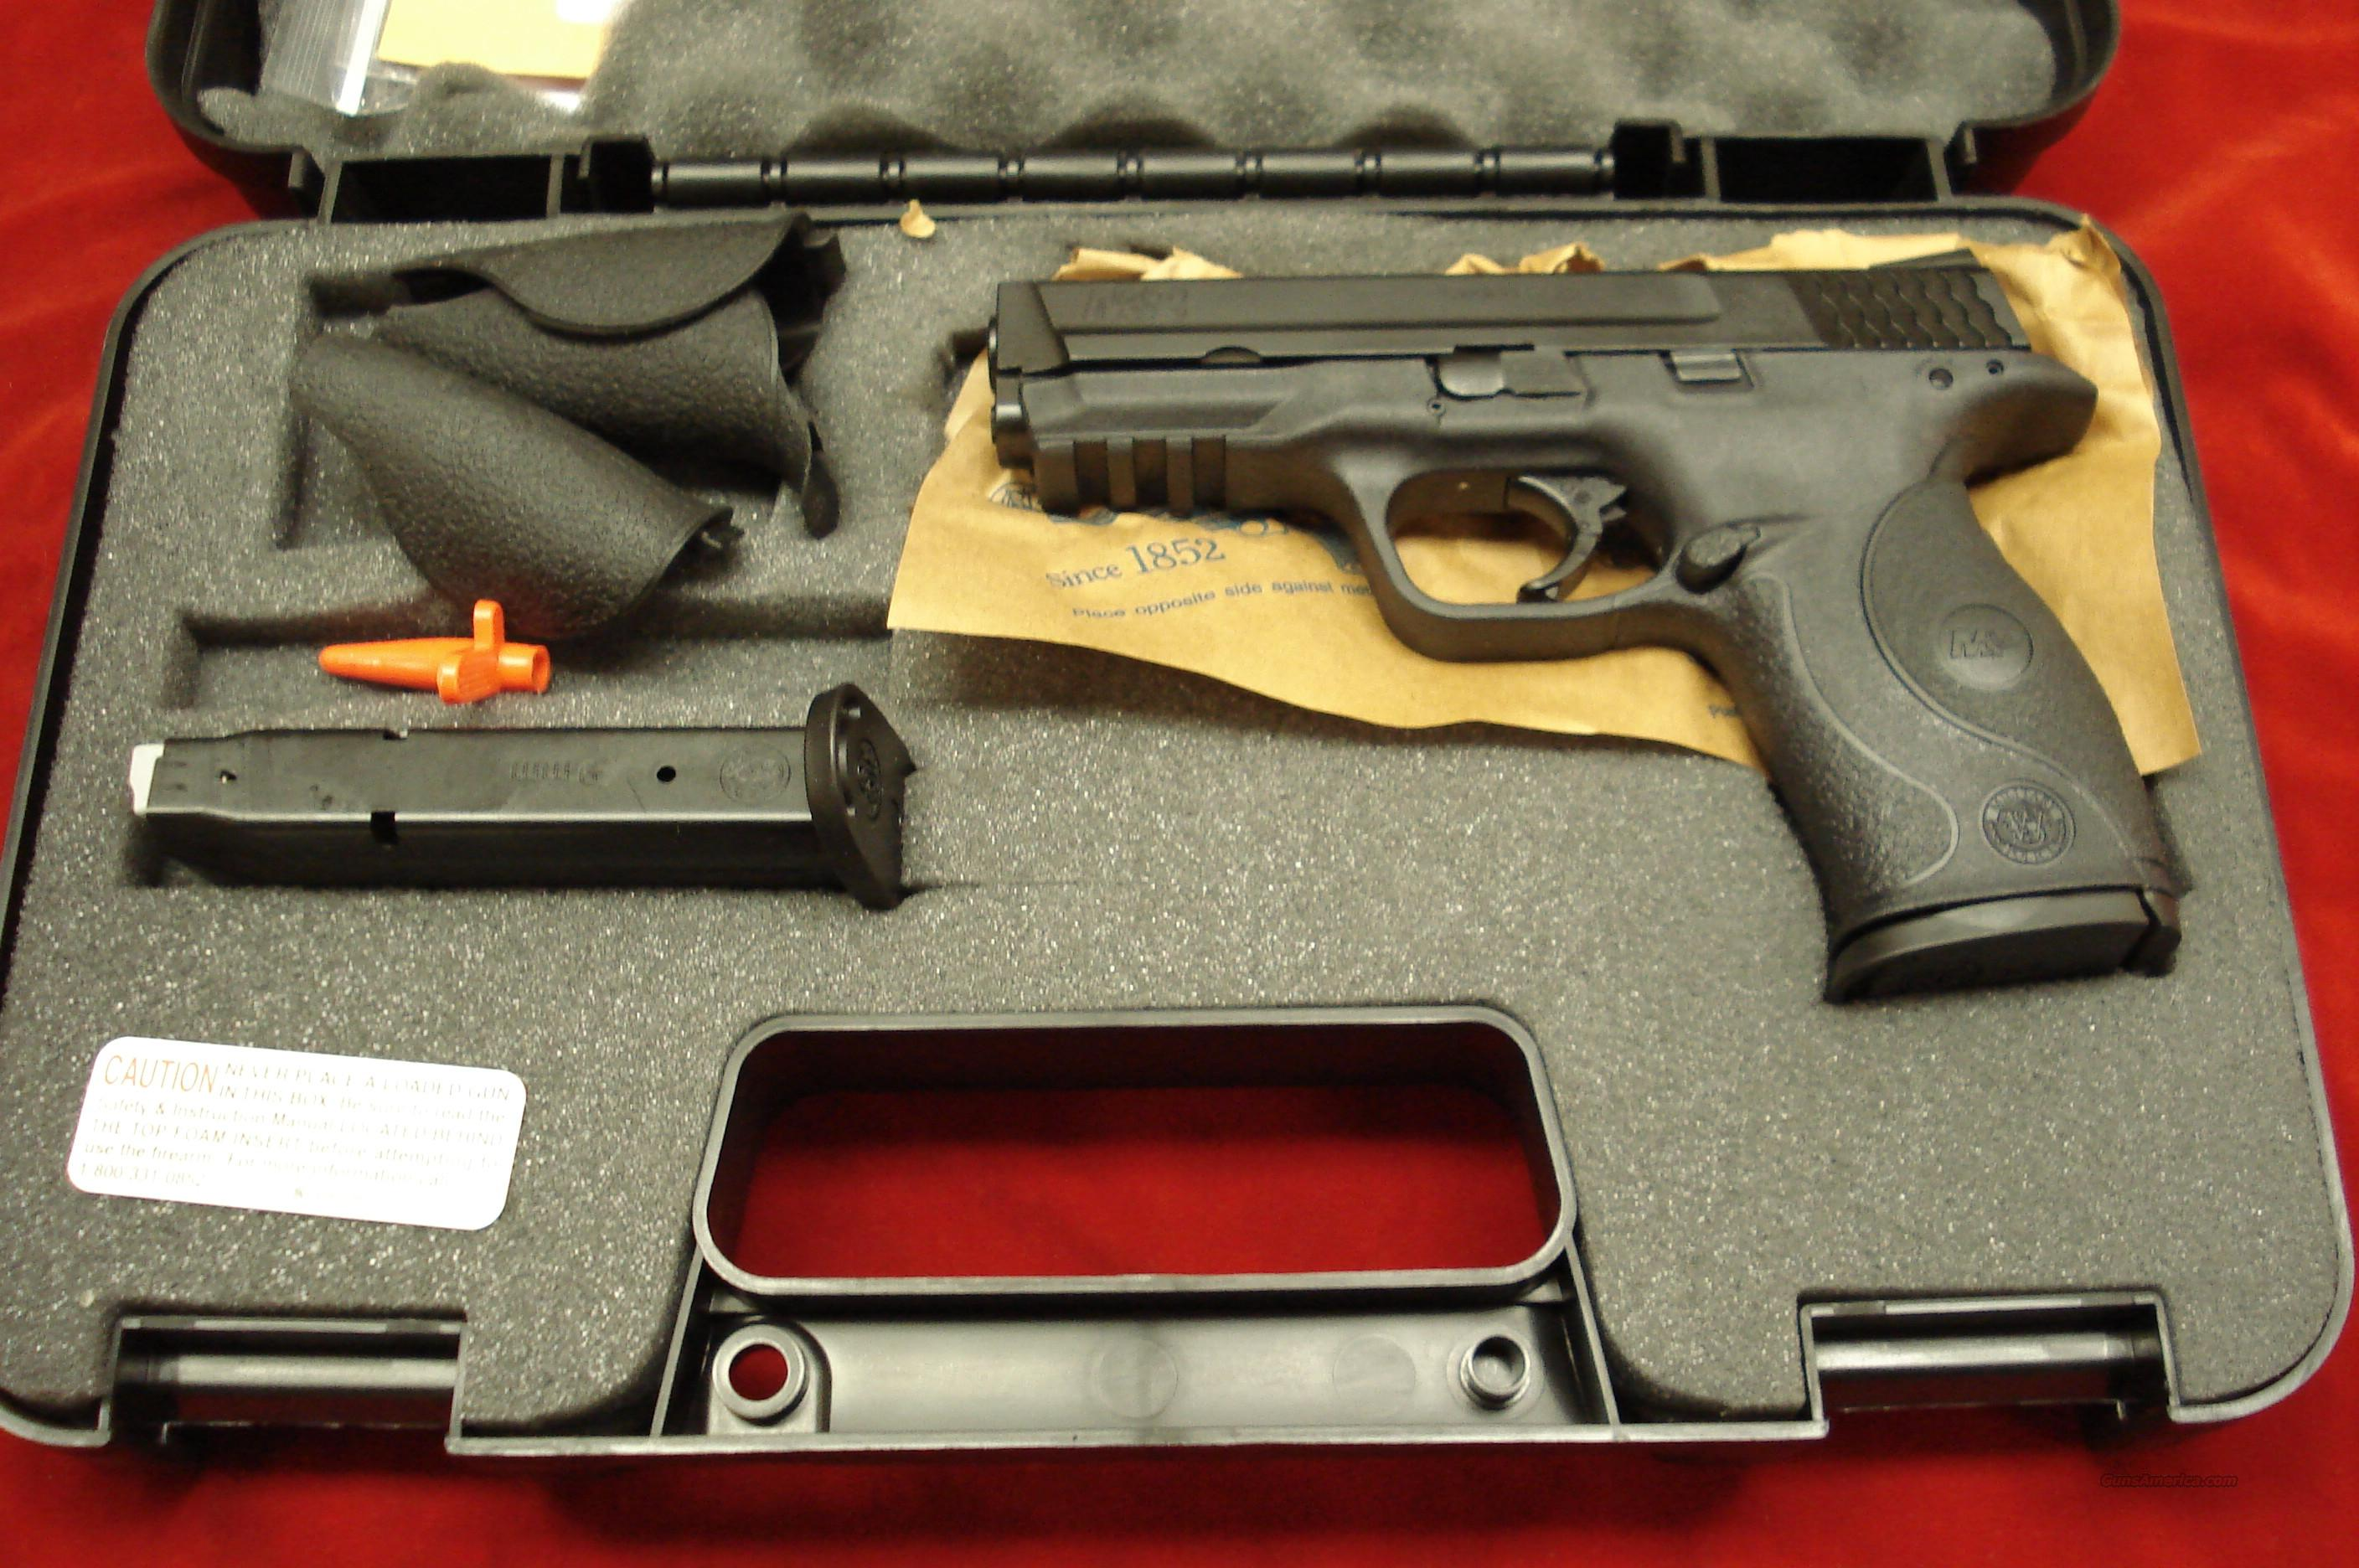 SMITH AND WESSON M&P 9MM HIGH/CAP W/CRIMSON TRACE LASER GRIPS NEW  Guns > Pistols > Smith & Wesson Pistols - Autos > Polymer Frame